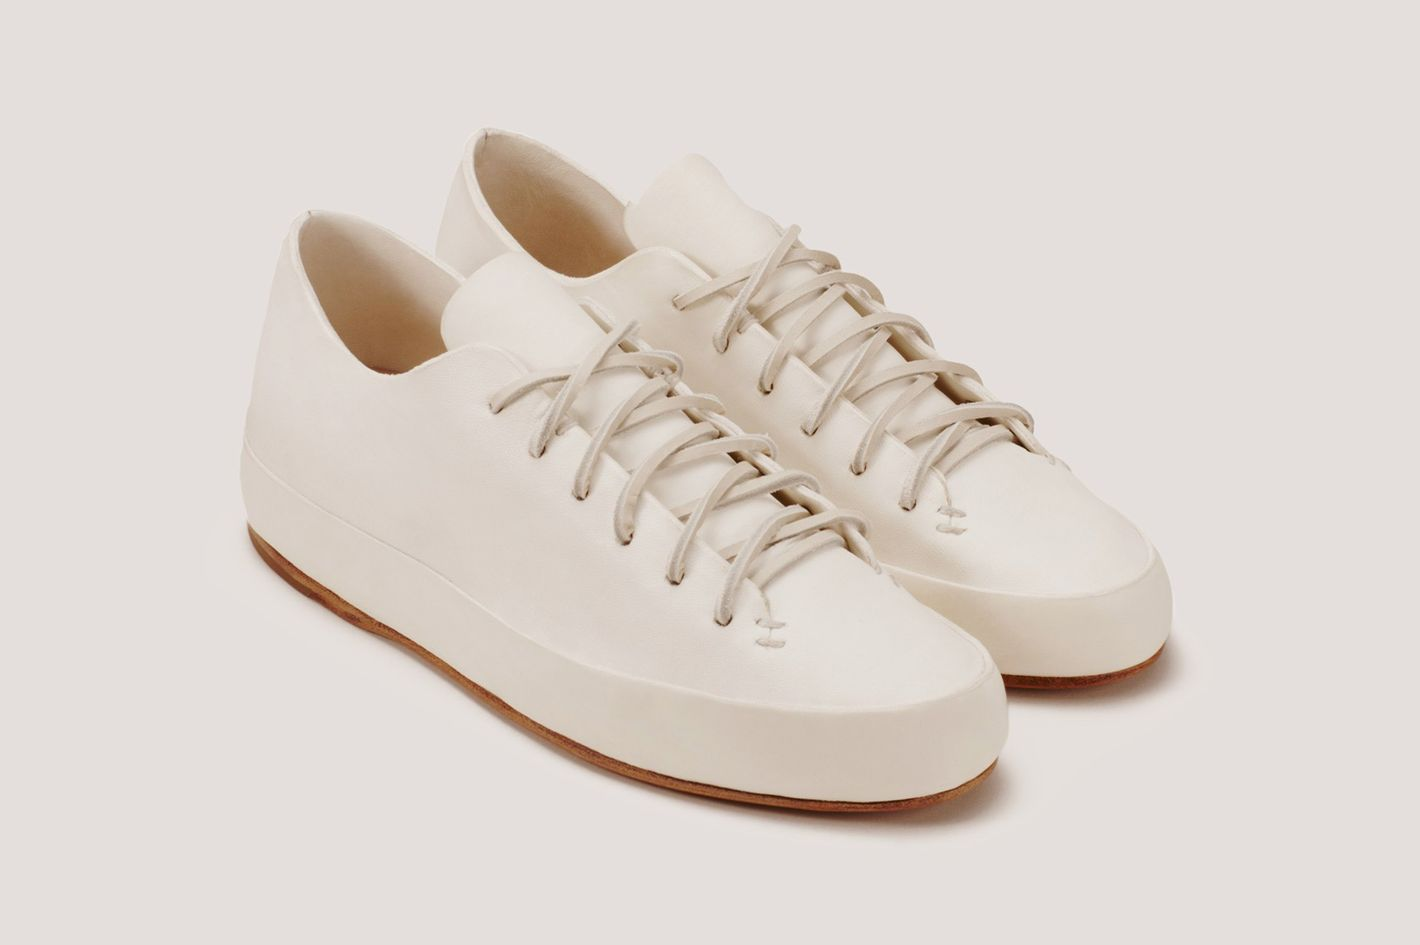 15 Best White Sneakers for Women 2018 5b2f577f9